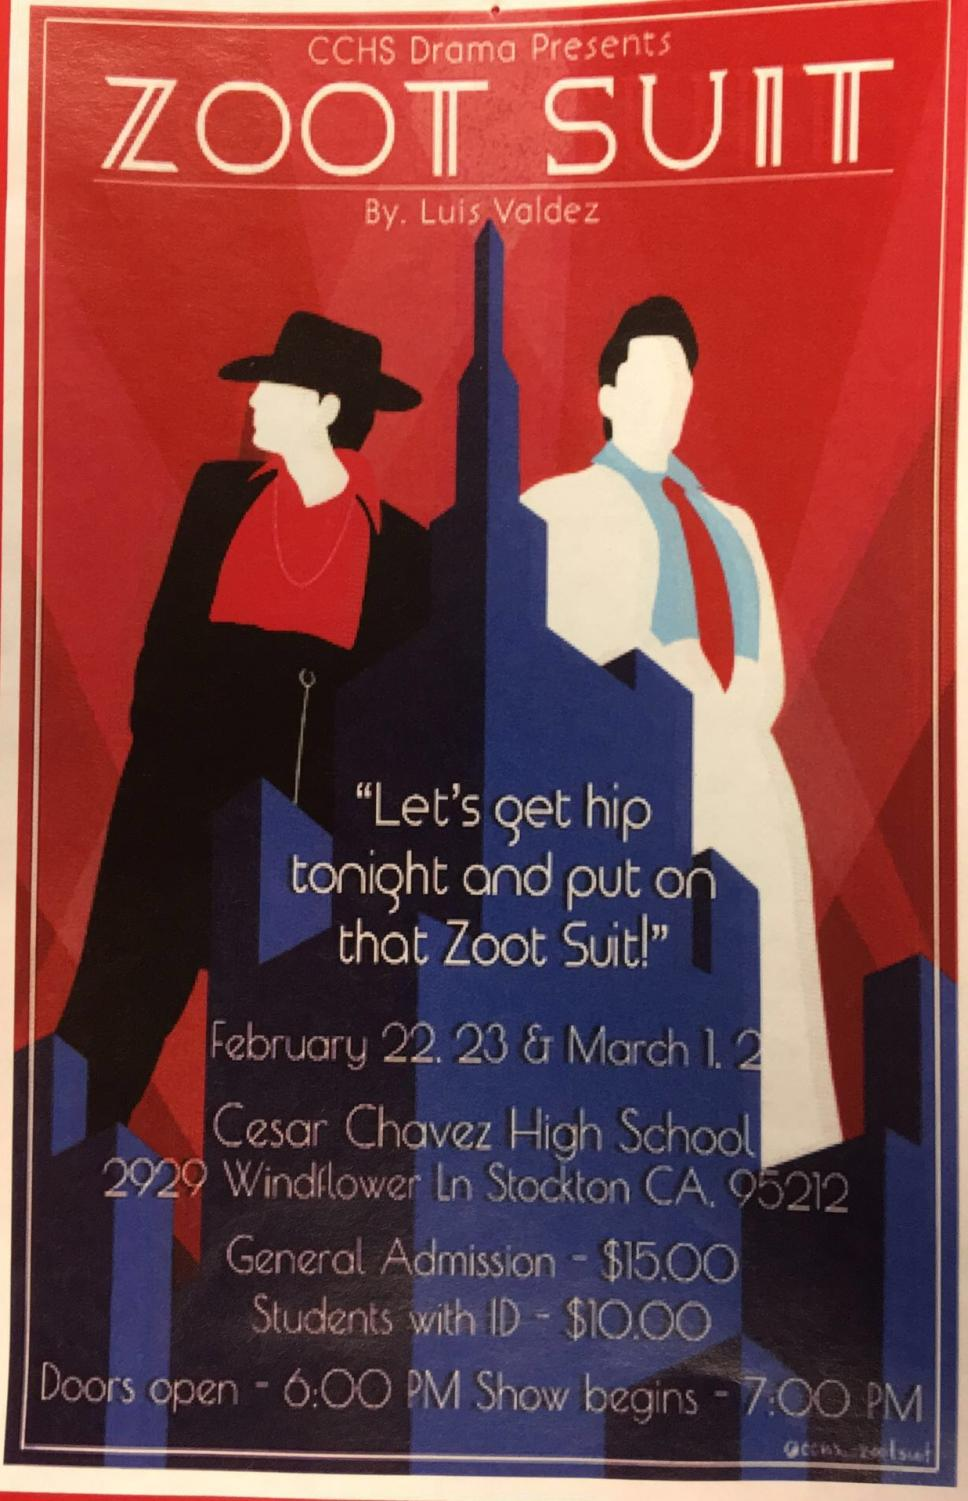 Opening night is Thursday 2/21/19